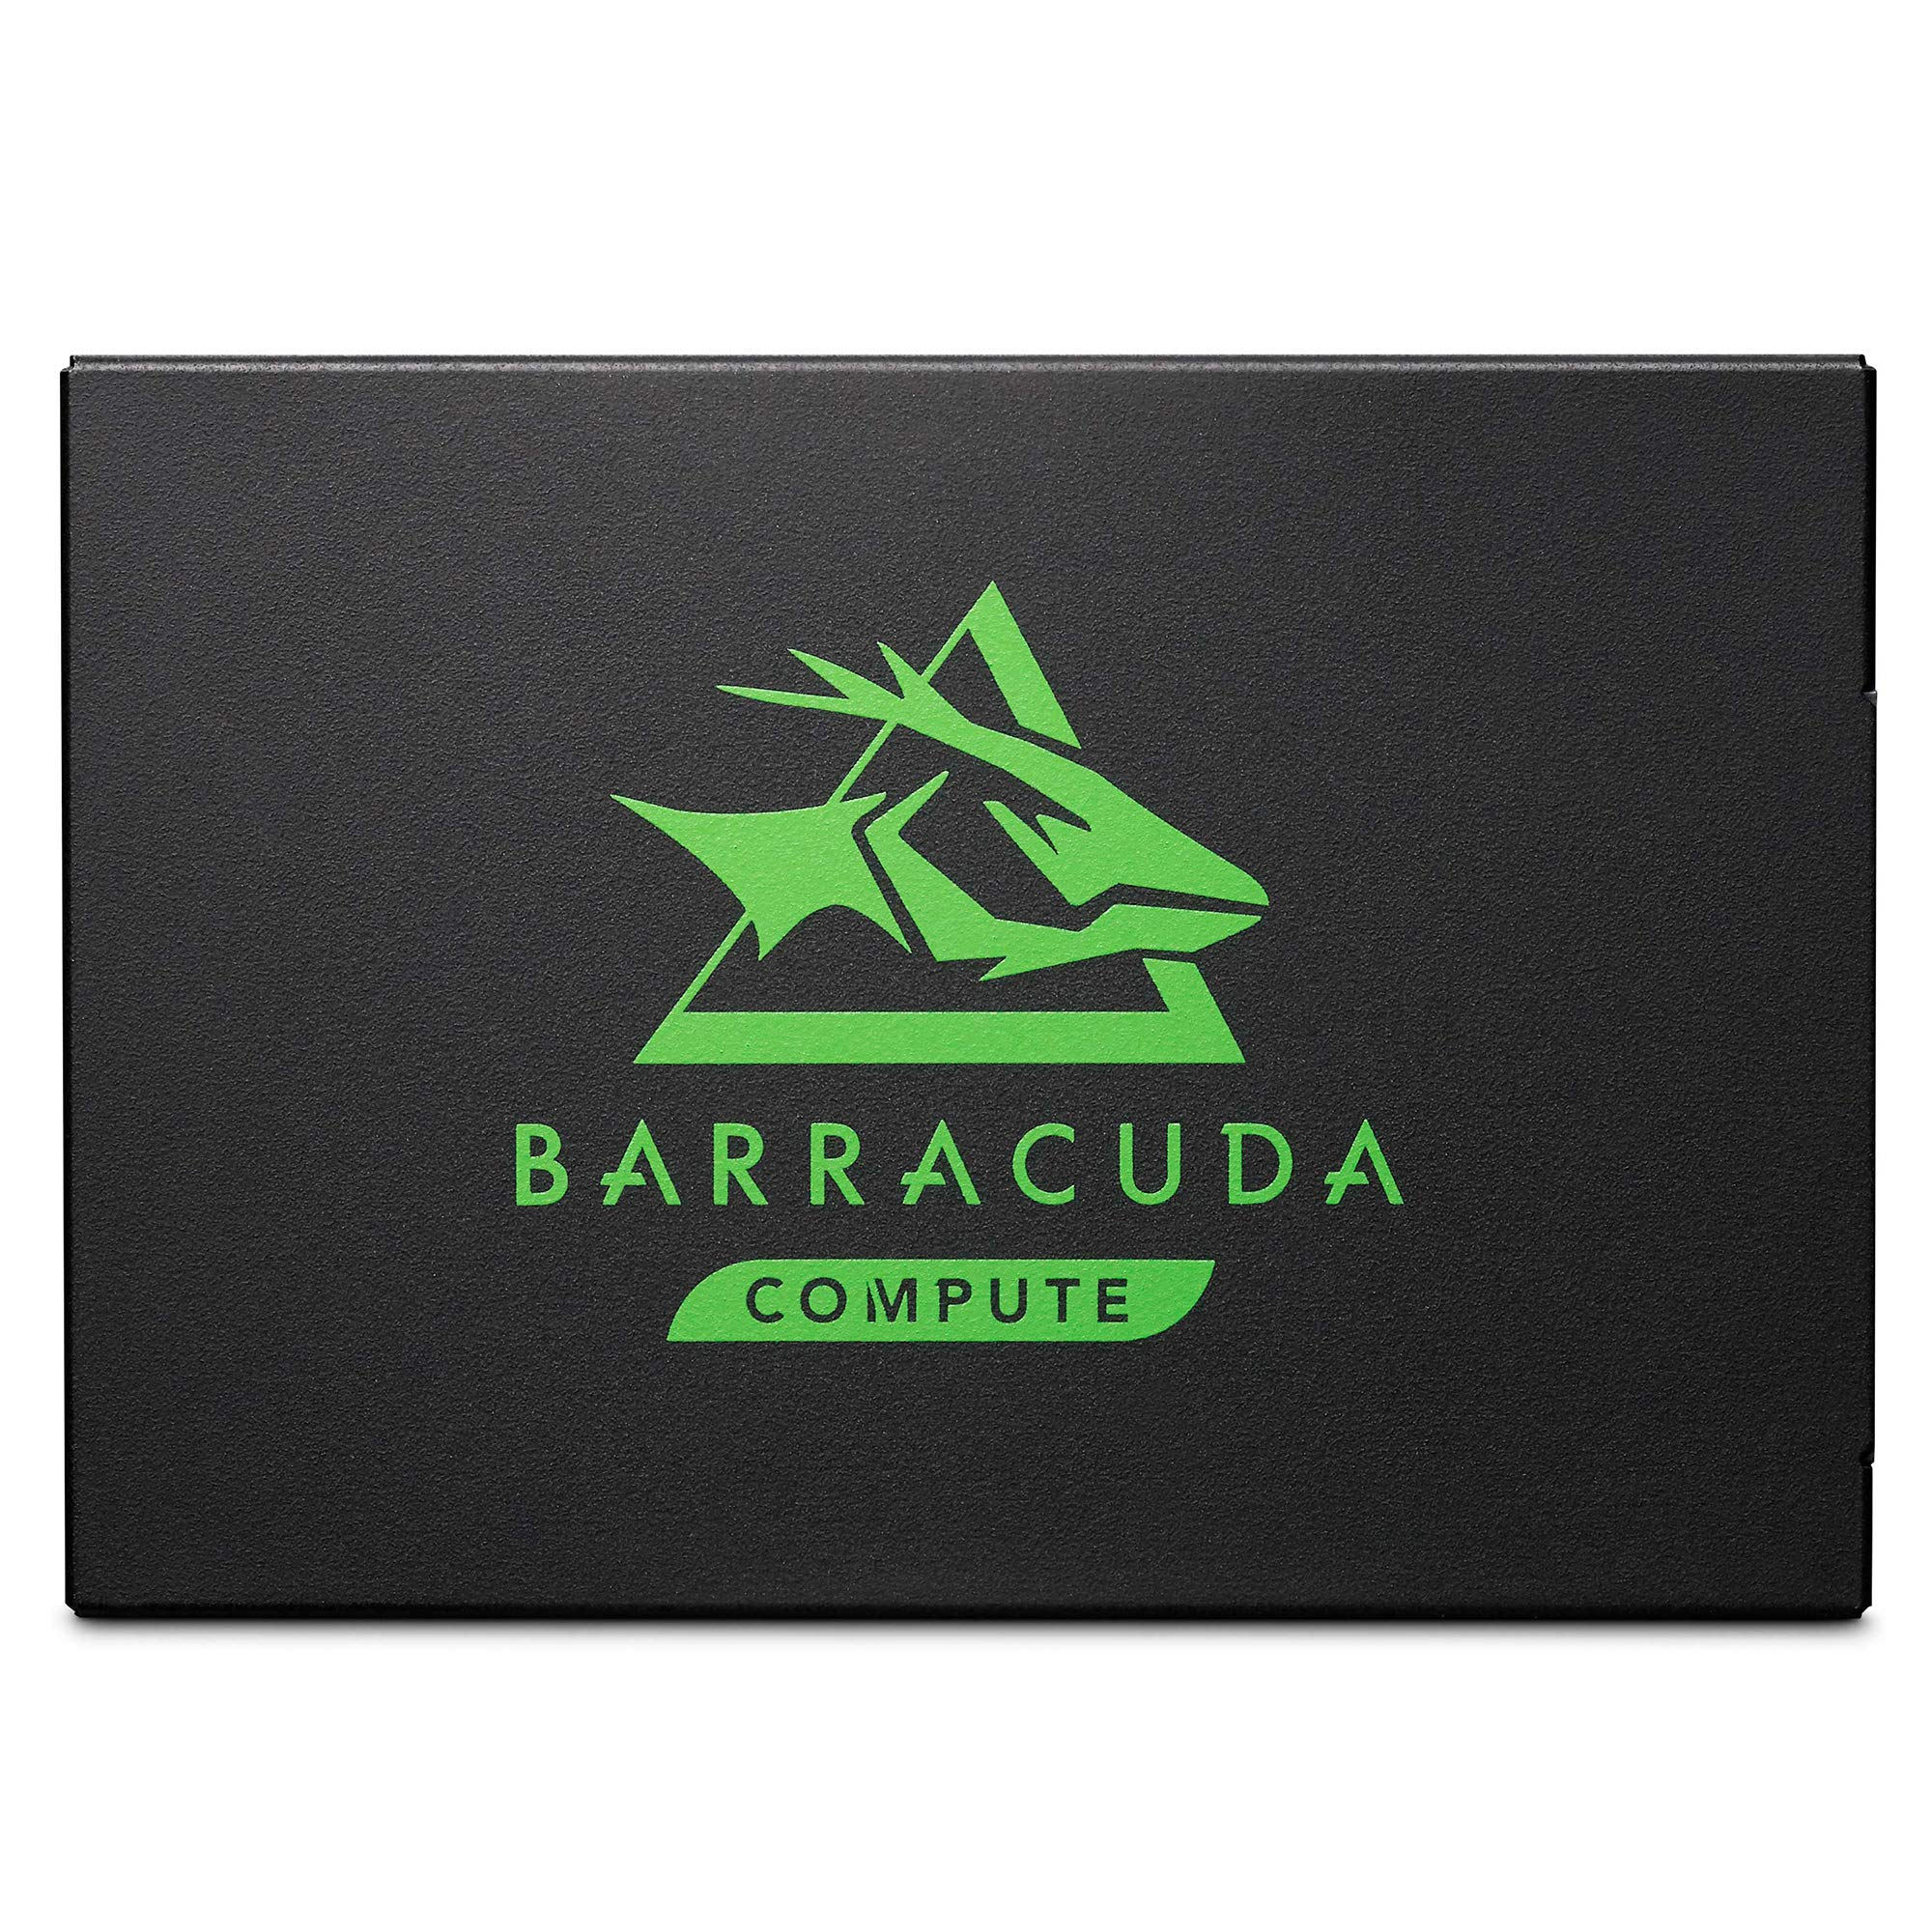 SSD 500GB SATA Seagate Barracuda 120 500GB 2.5in 6GB/S for C